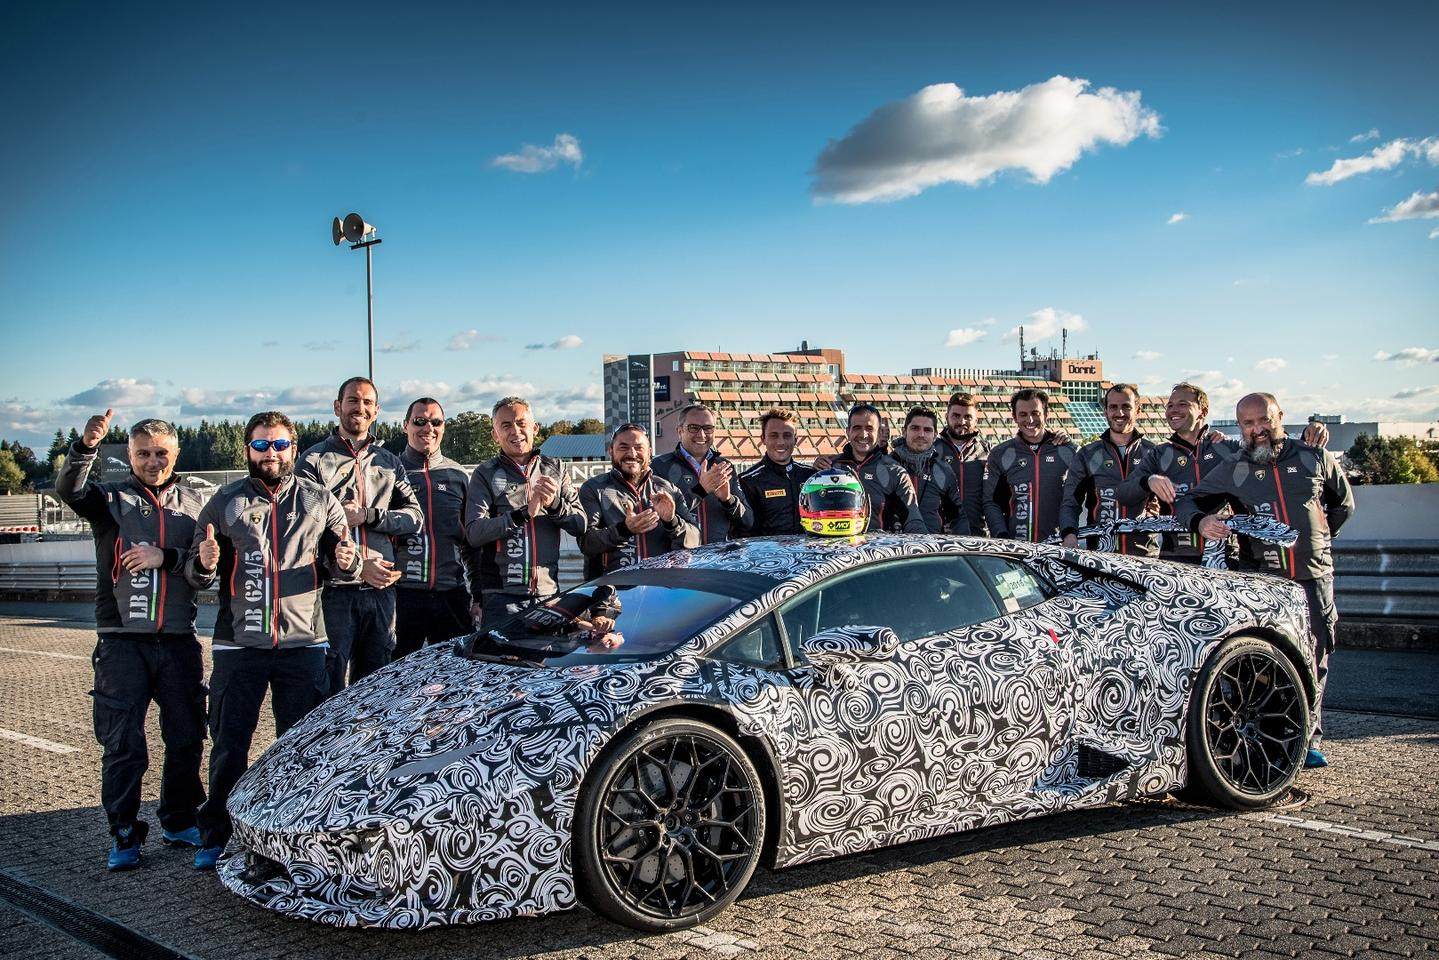 The Huracan Performante and the team behind its record-breaking lap